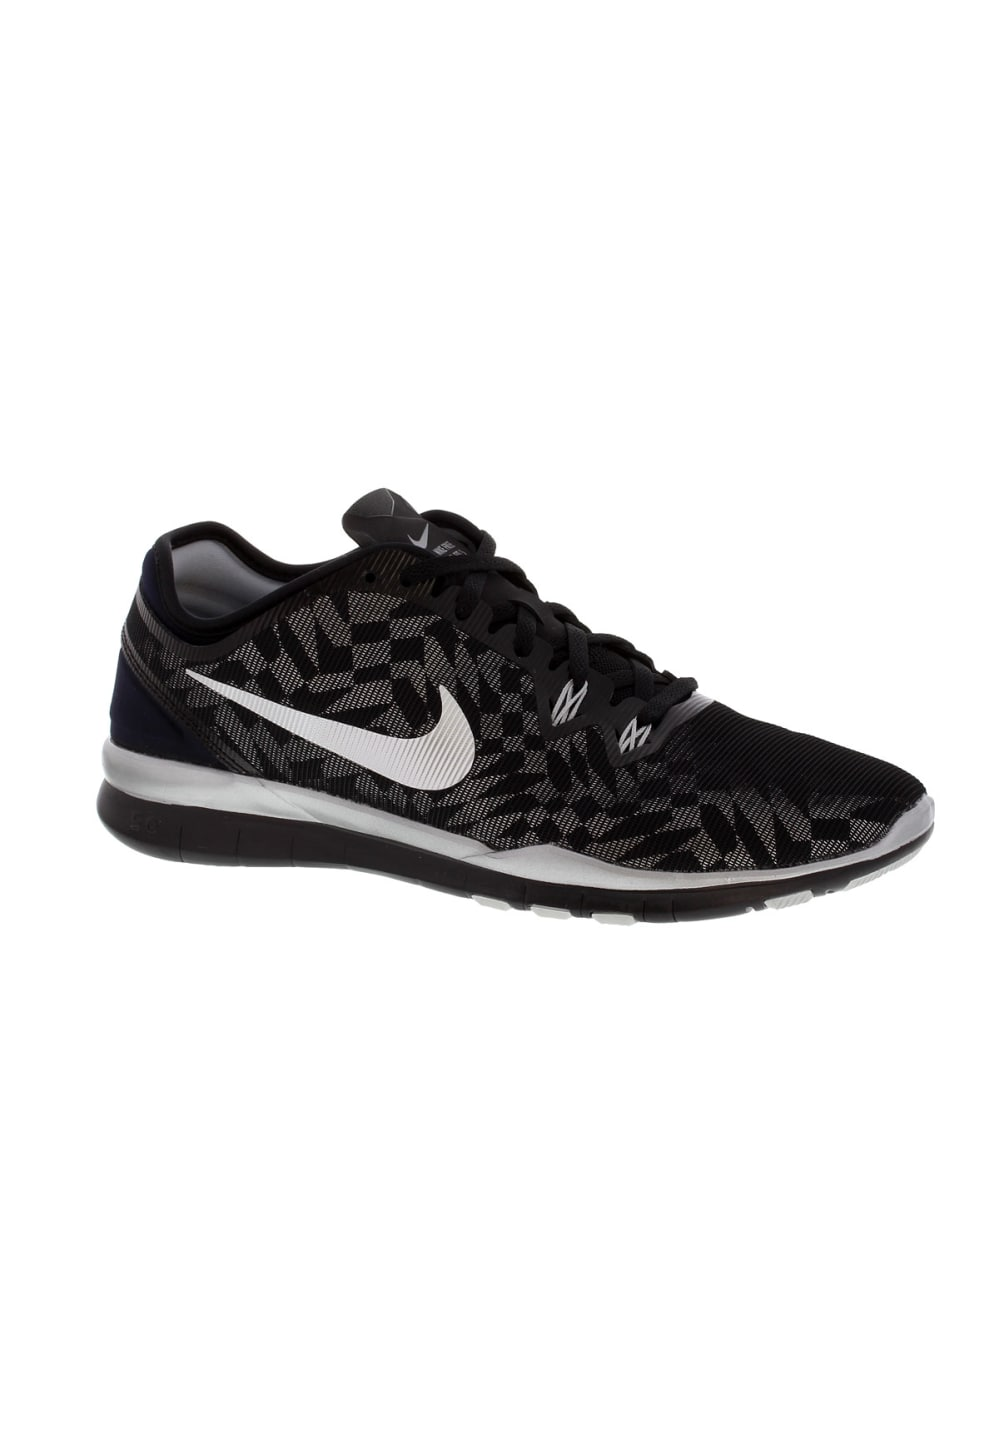 premium selection d8477 08c69 Nike Free 5.0 Tr Fit 5 Metallic - Running shoes for Women - Black